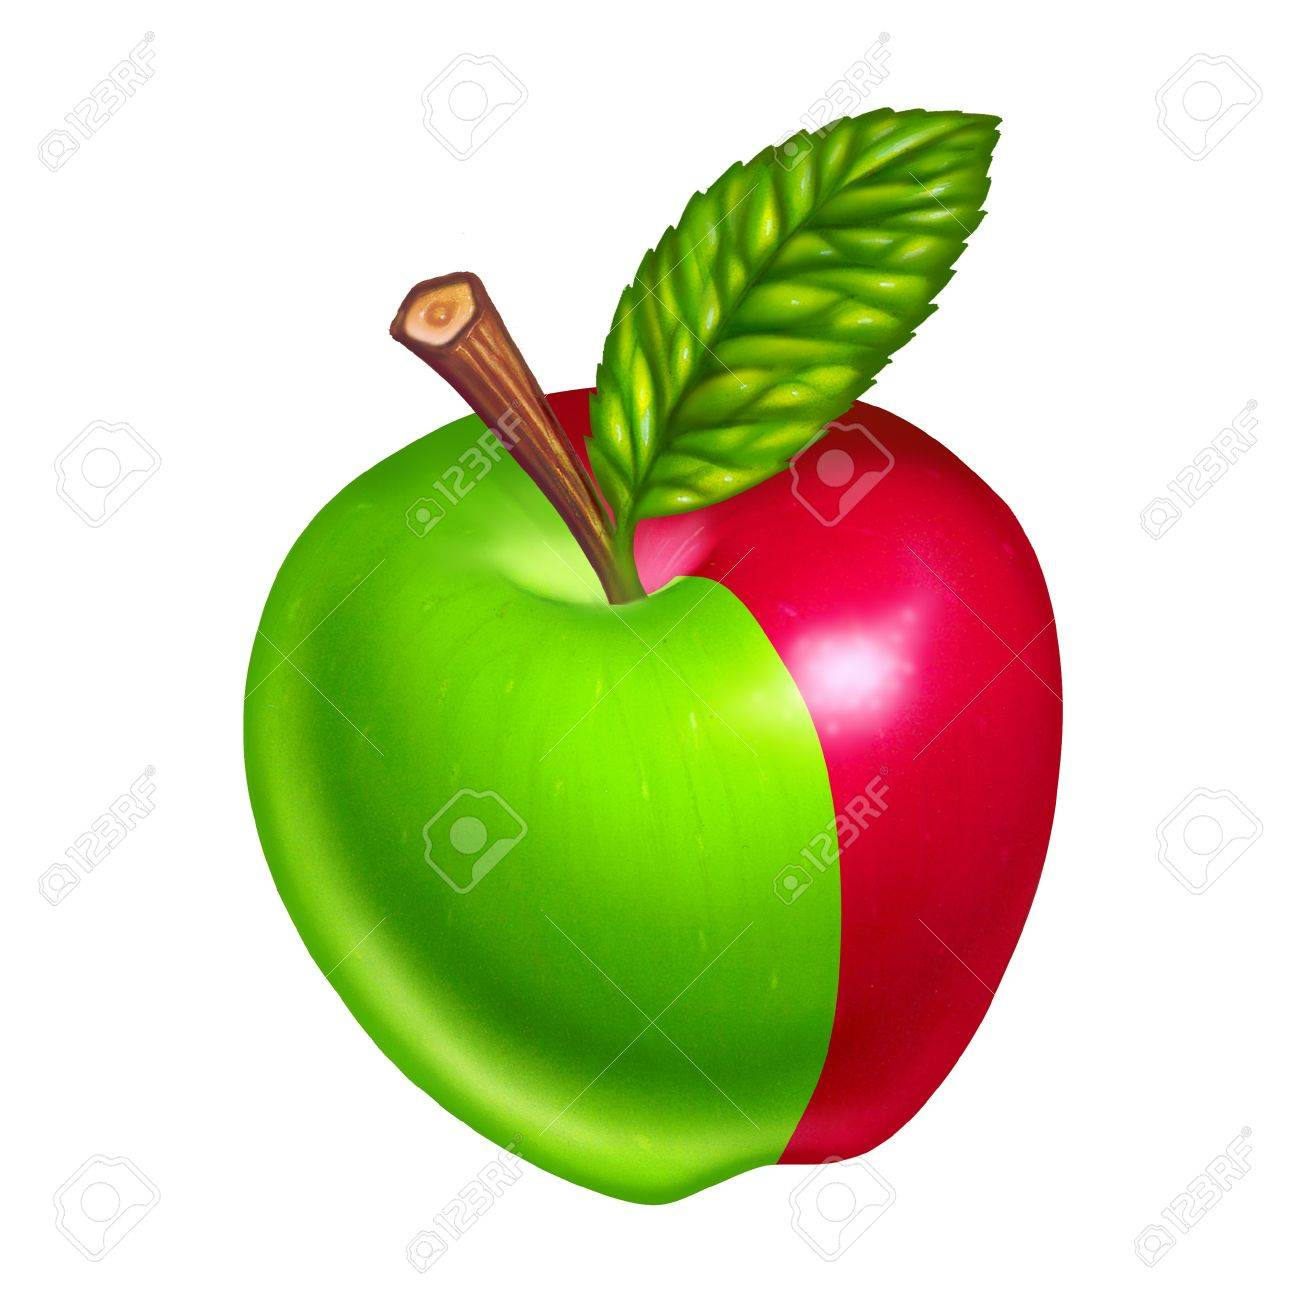 green and red apples. green and red apples isolated on white background stock photo - 10976370